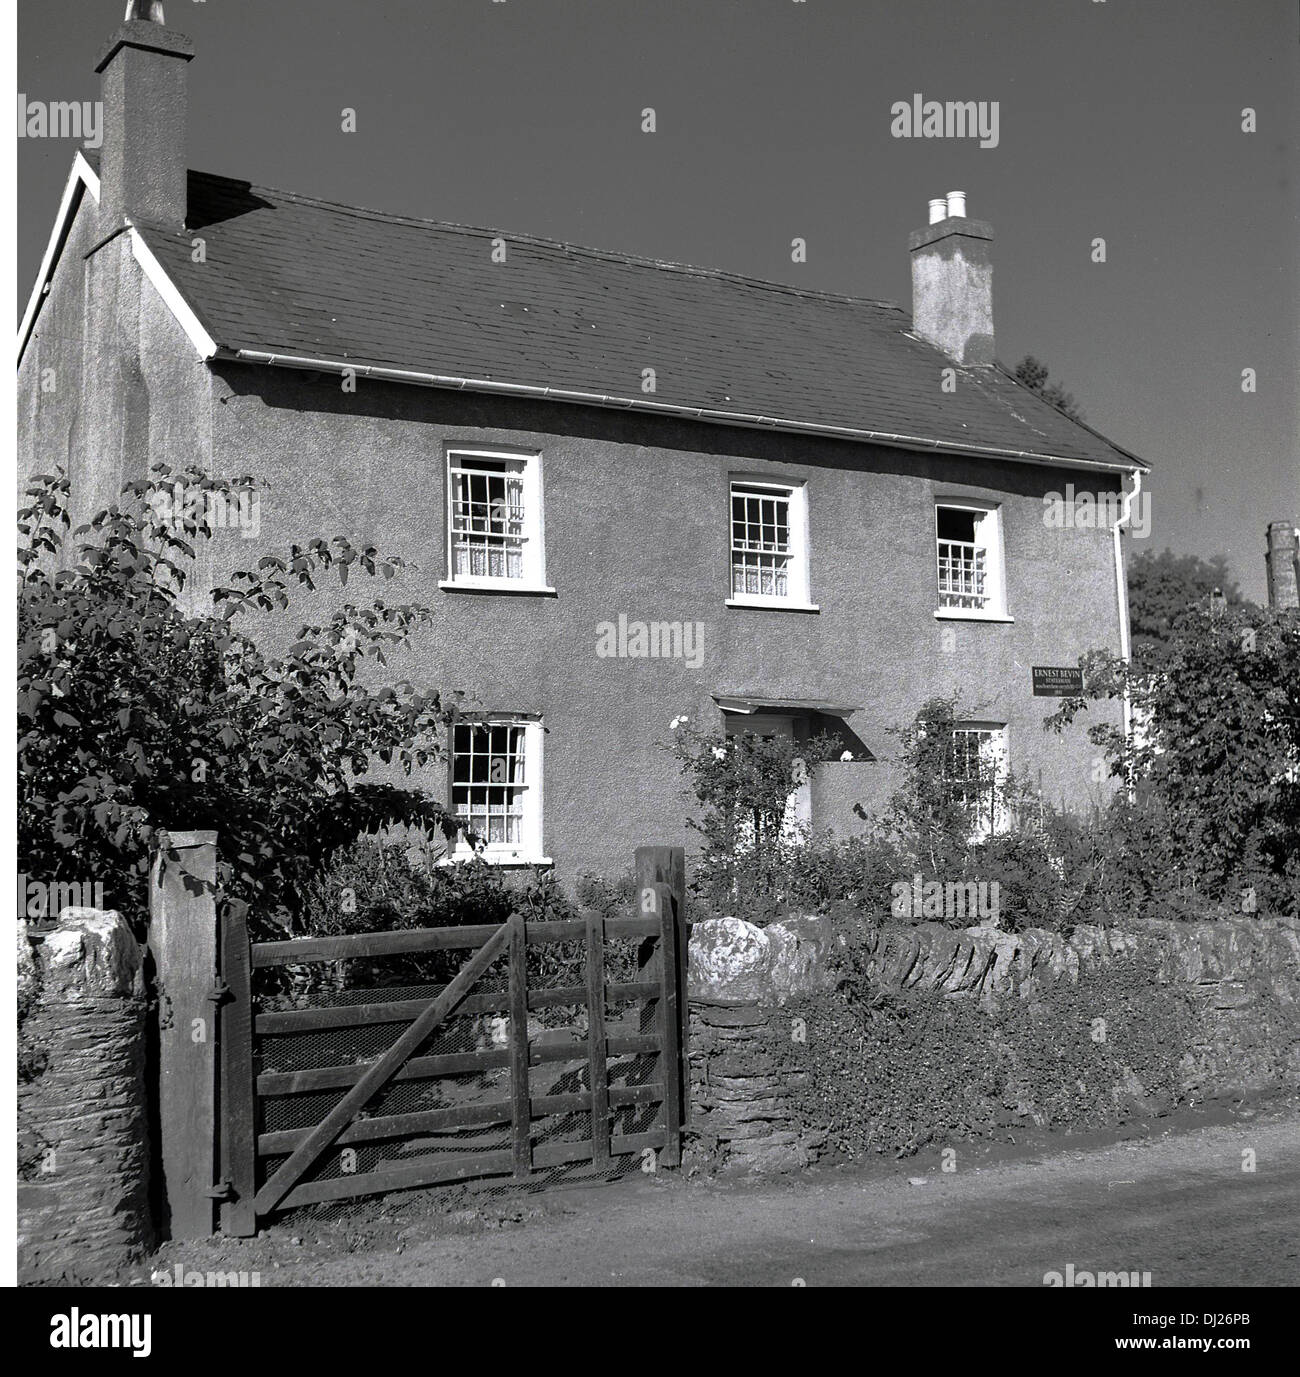 Historical picture,1950s, of the farm house in Tredegar, South Wales where Labour MP and Minister Aneurin 'Nye 'Bevan grew up. - Stock Image